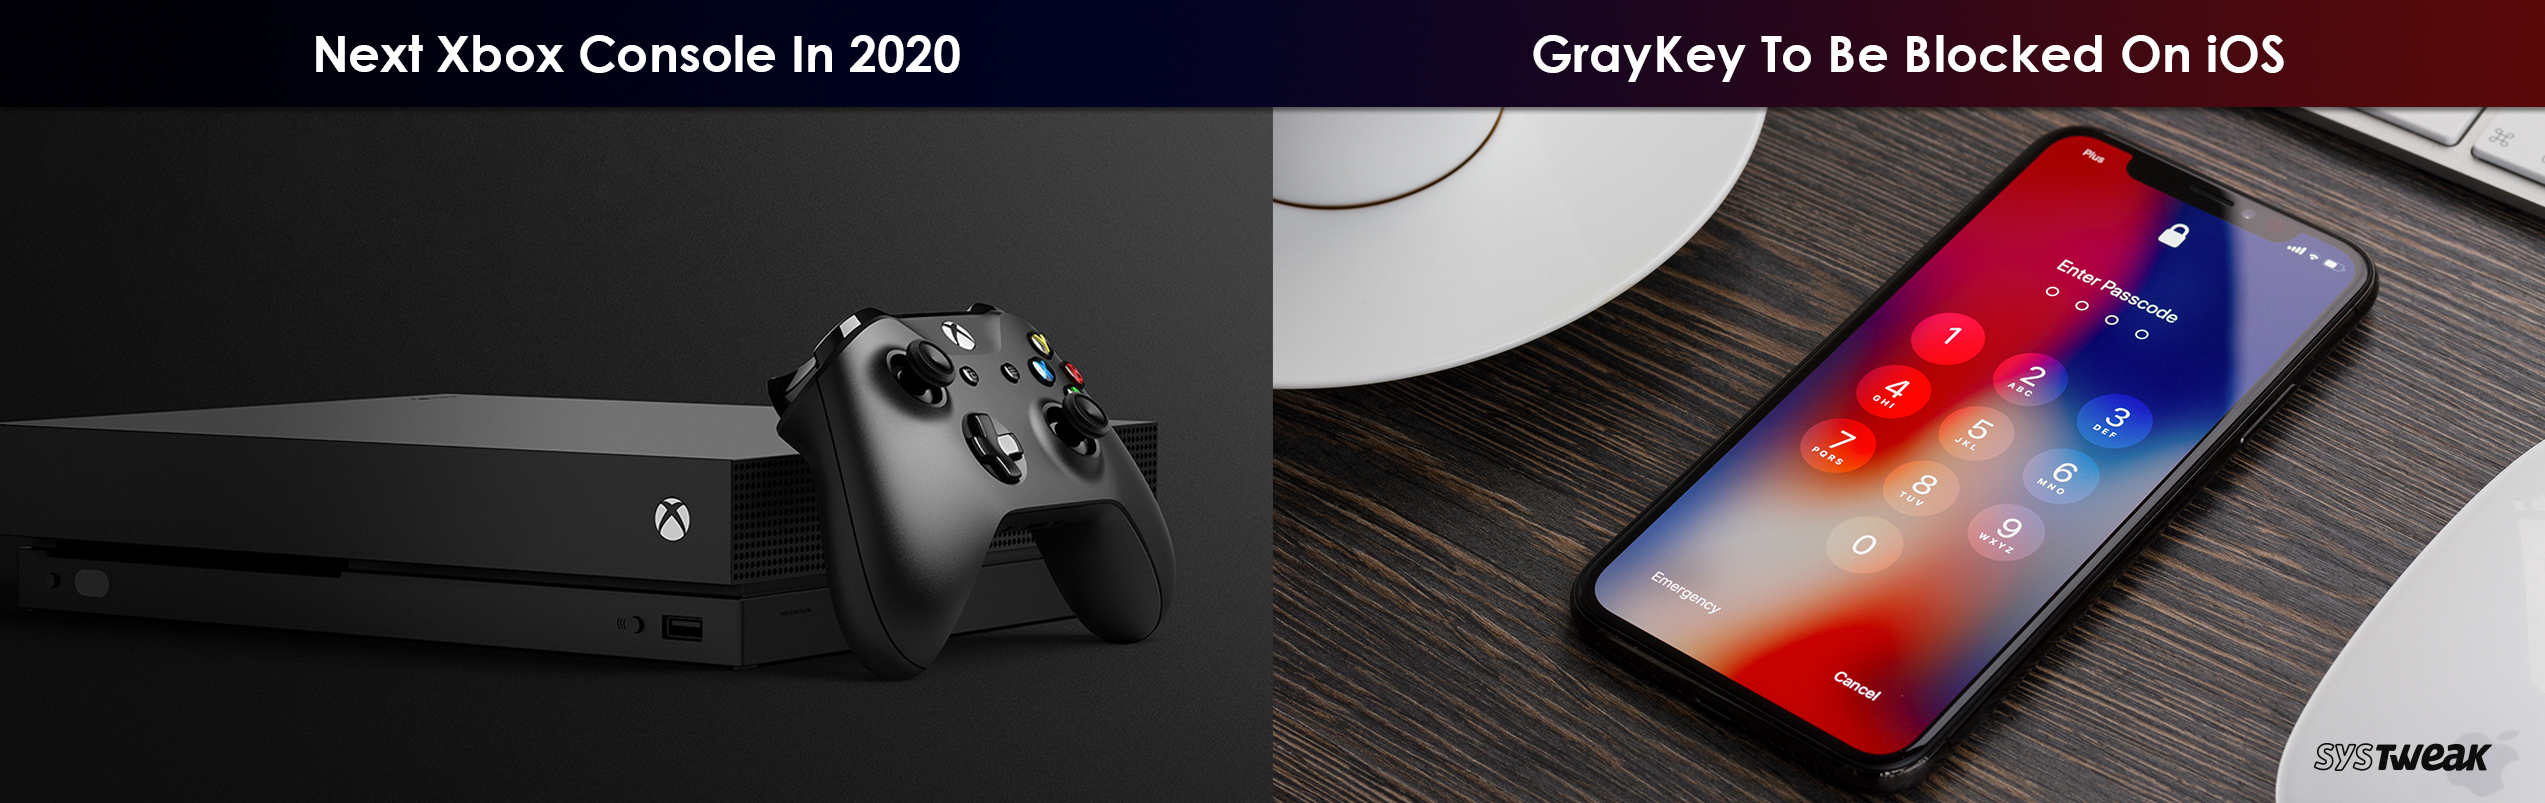 Newsletter: New Xbox Console Expected In 2020 & iOS Update Blocks GrayKey Tool